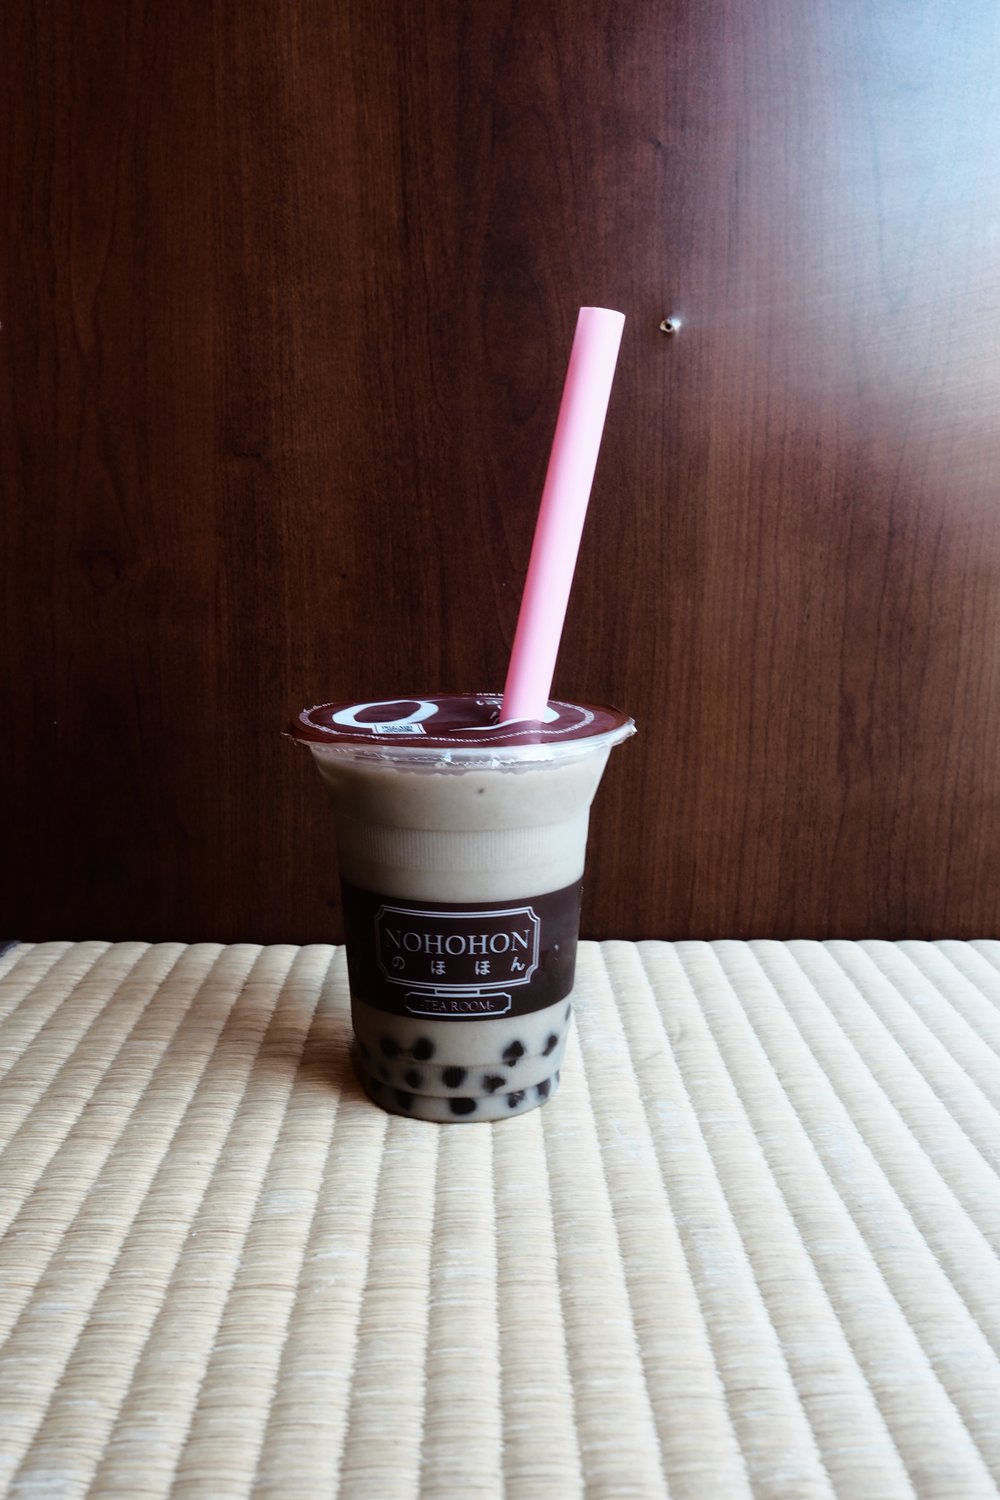 nohohon-bubble-tea-toronto